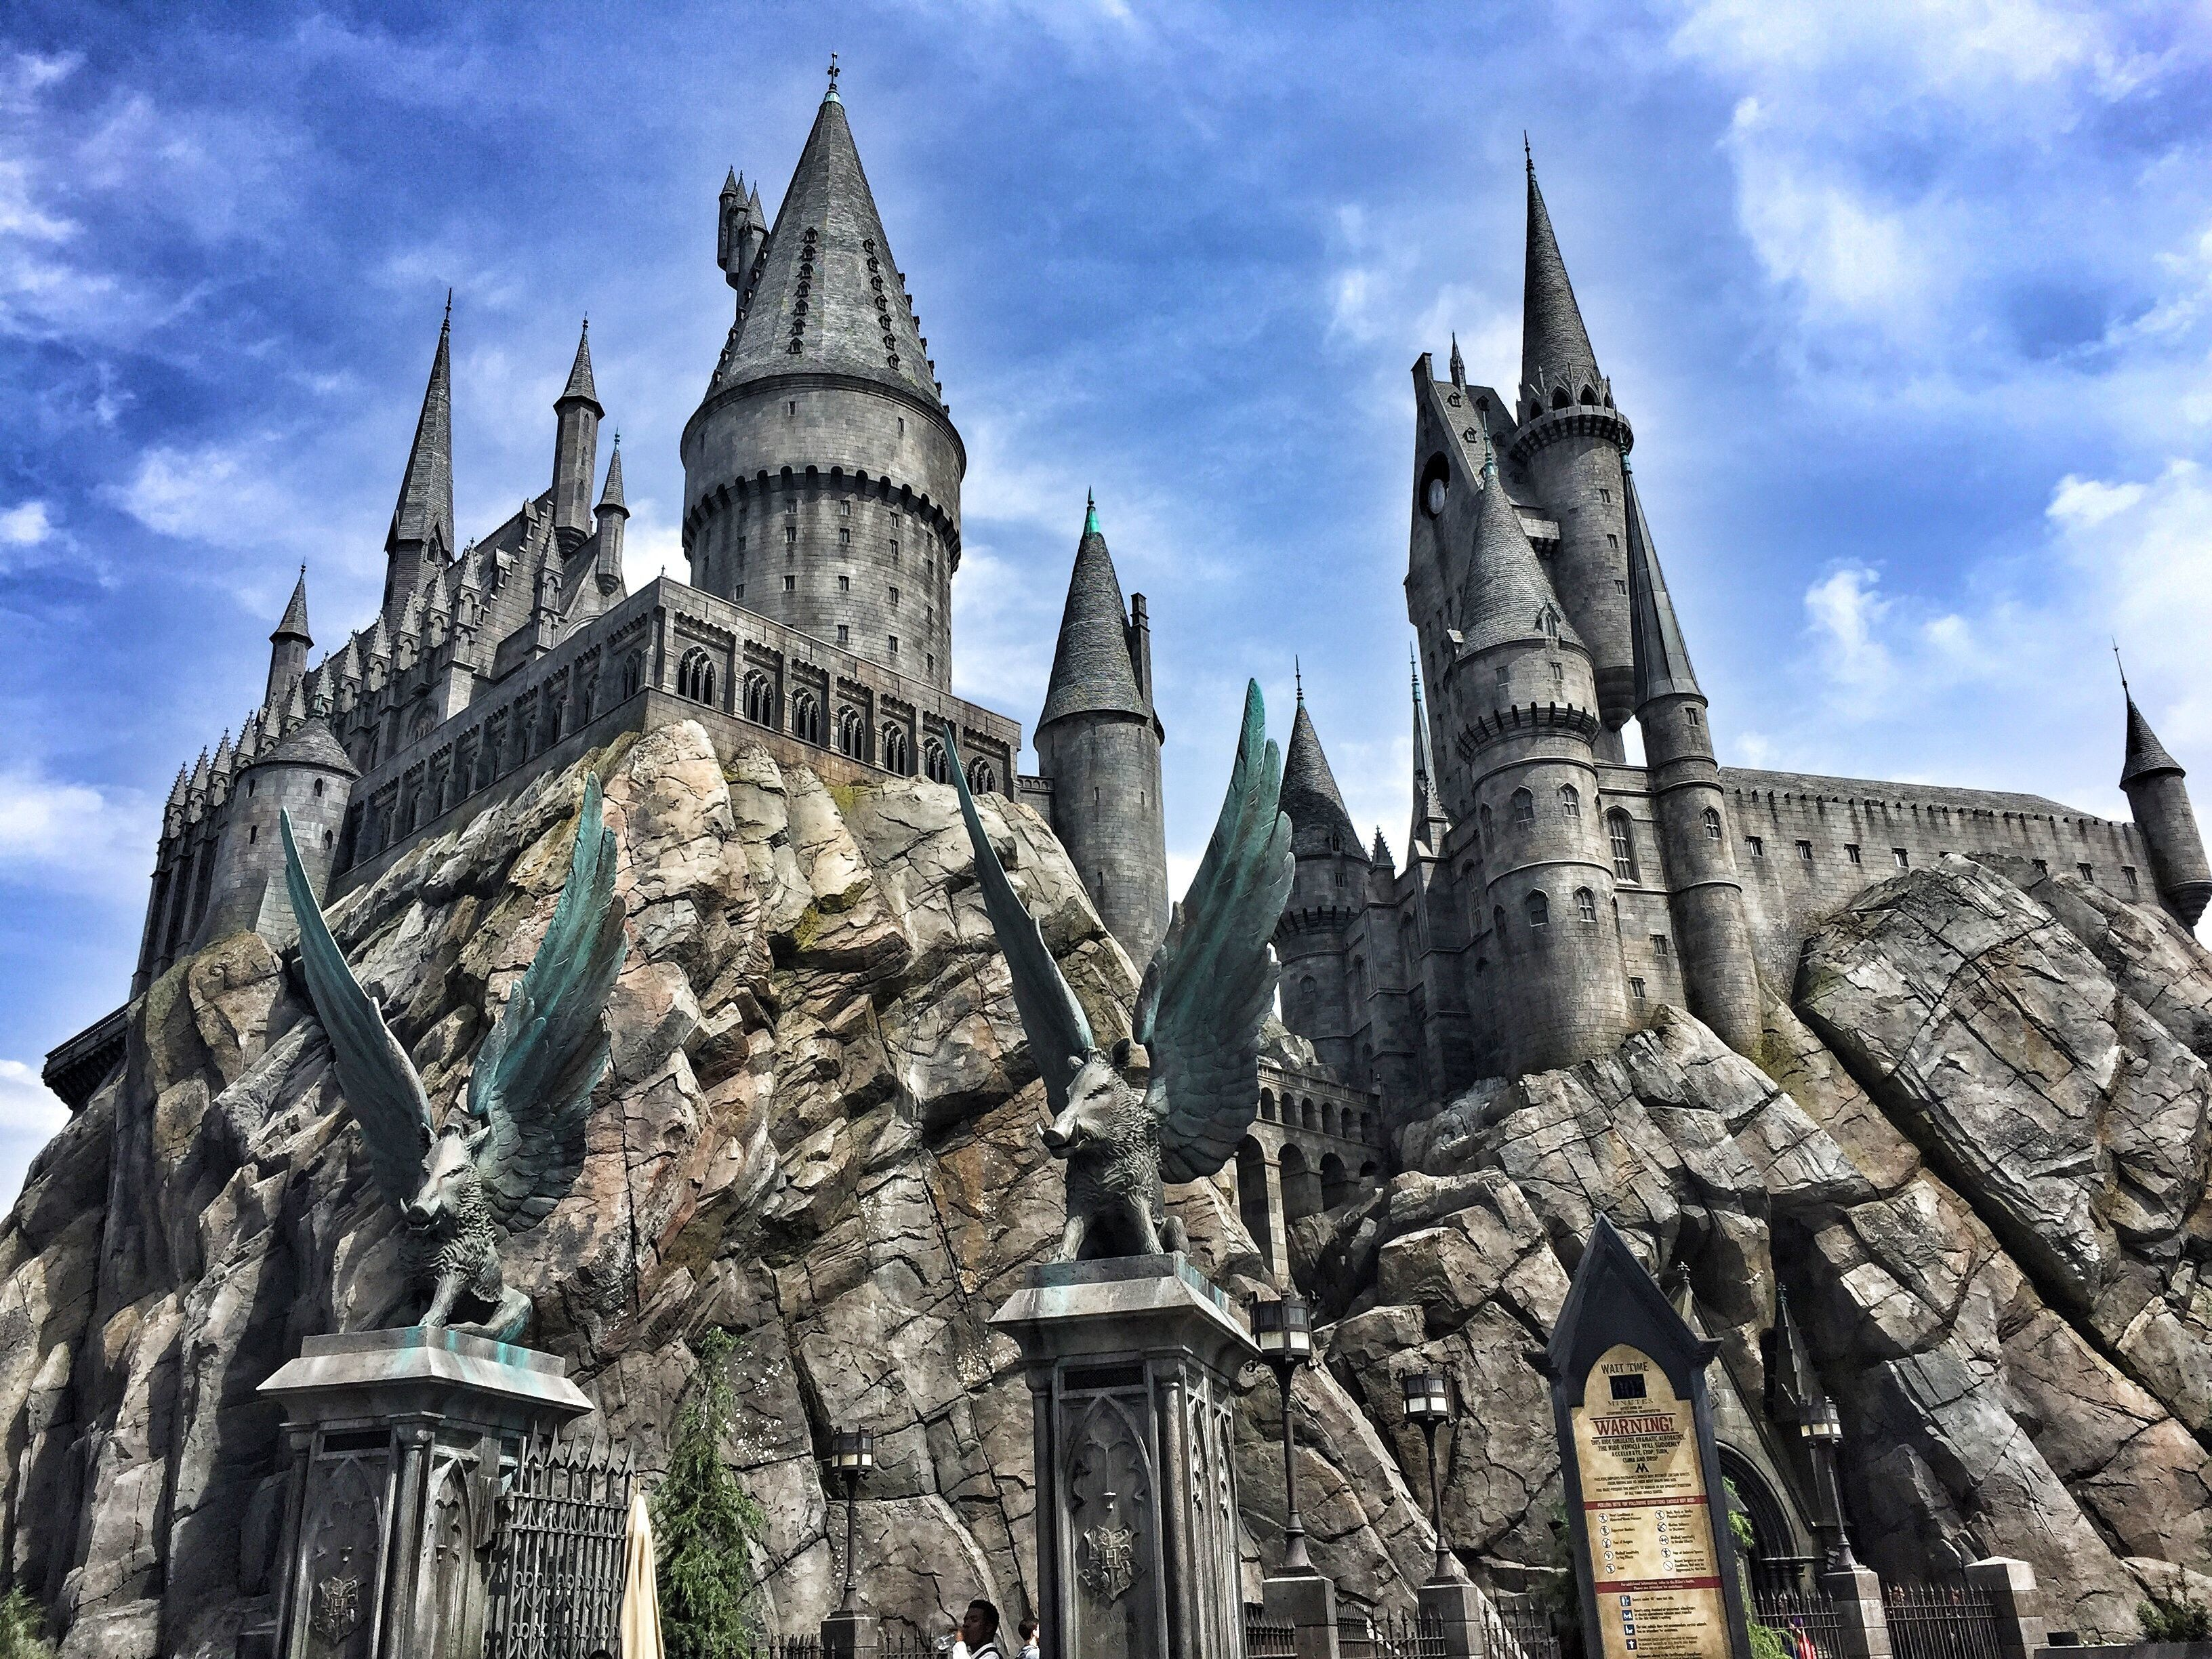 'Harry Potter' Fans Horrified By Grim Pottermore Tweet About Hogwarts Plumbing